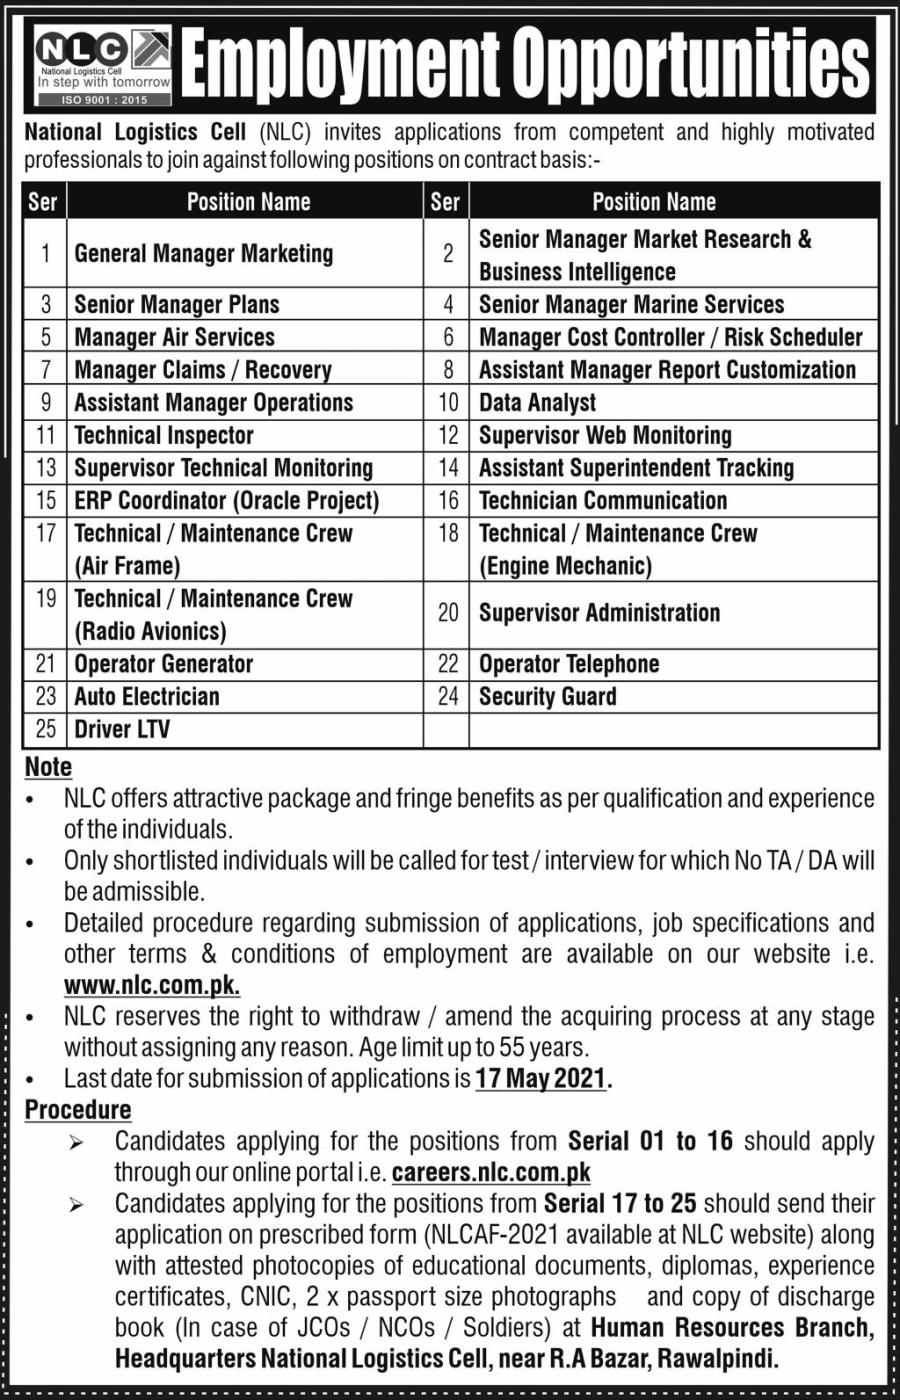 National Logistcs Cell (NLC) Jobs For General Manager Marketing, Senior Manager Plans, Manager Air Services, Manager Claims & Others May 2021 Advertisement